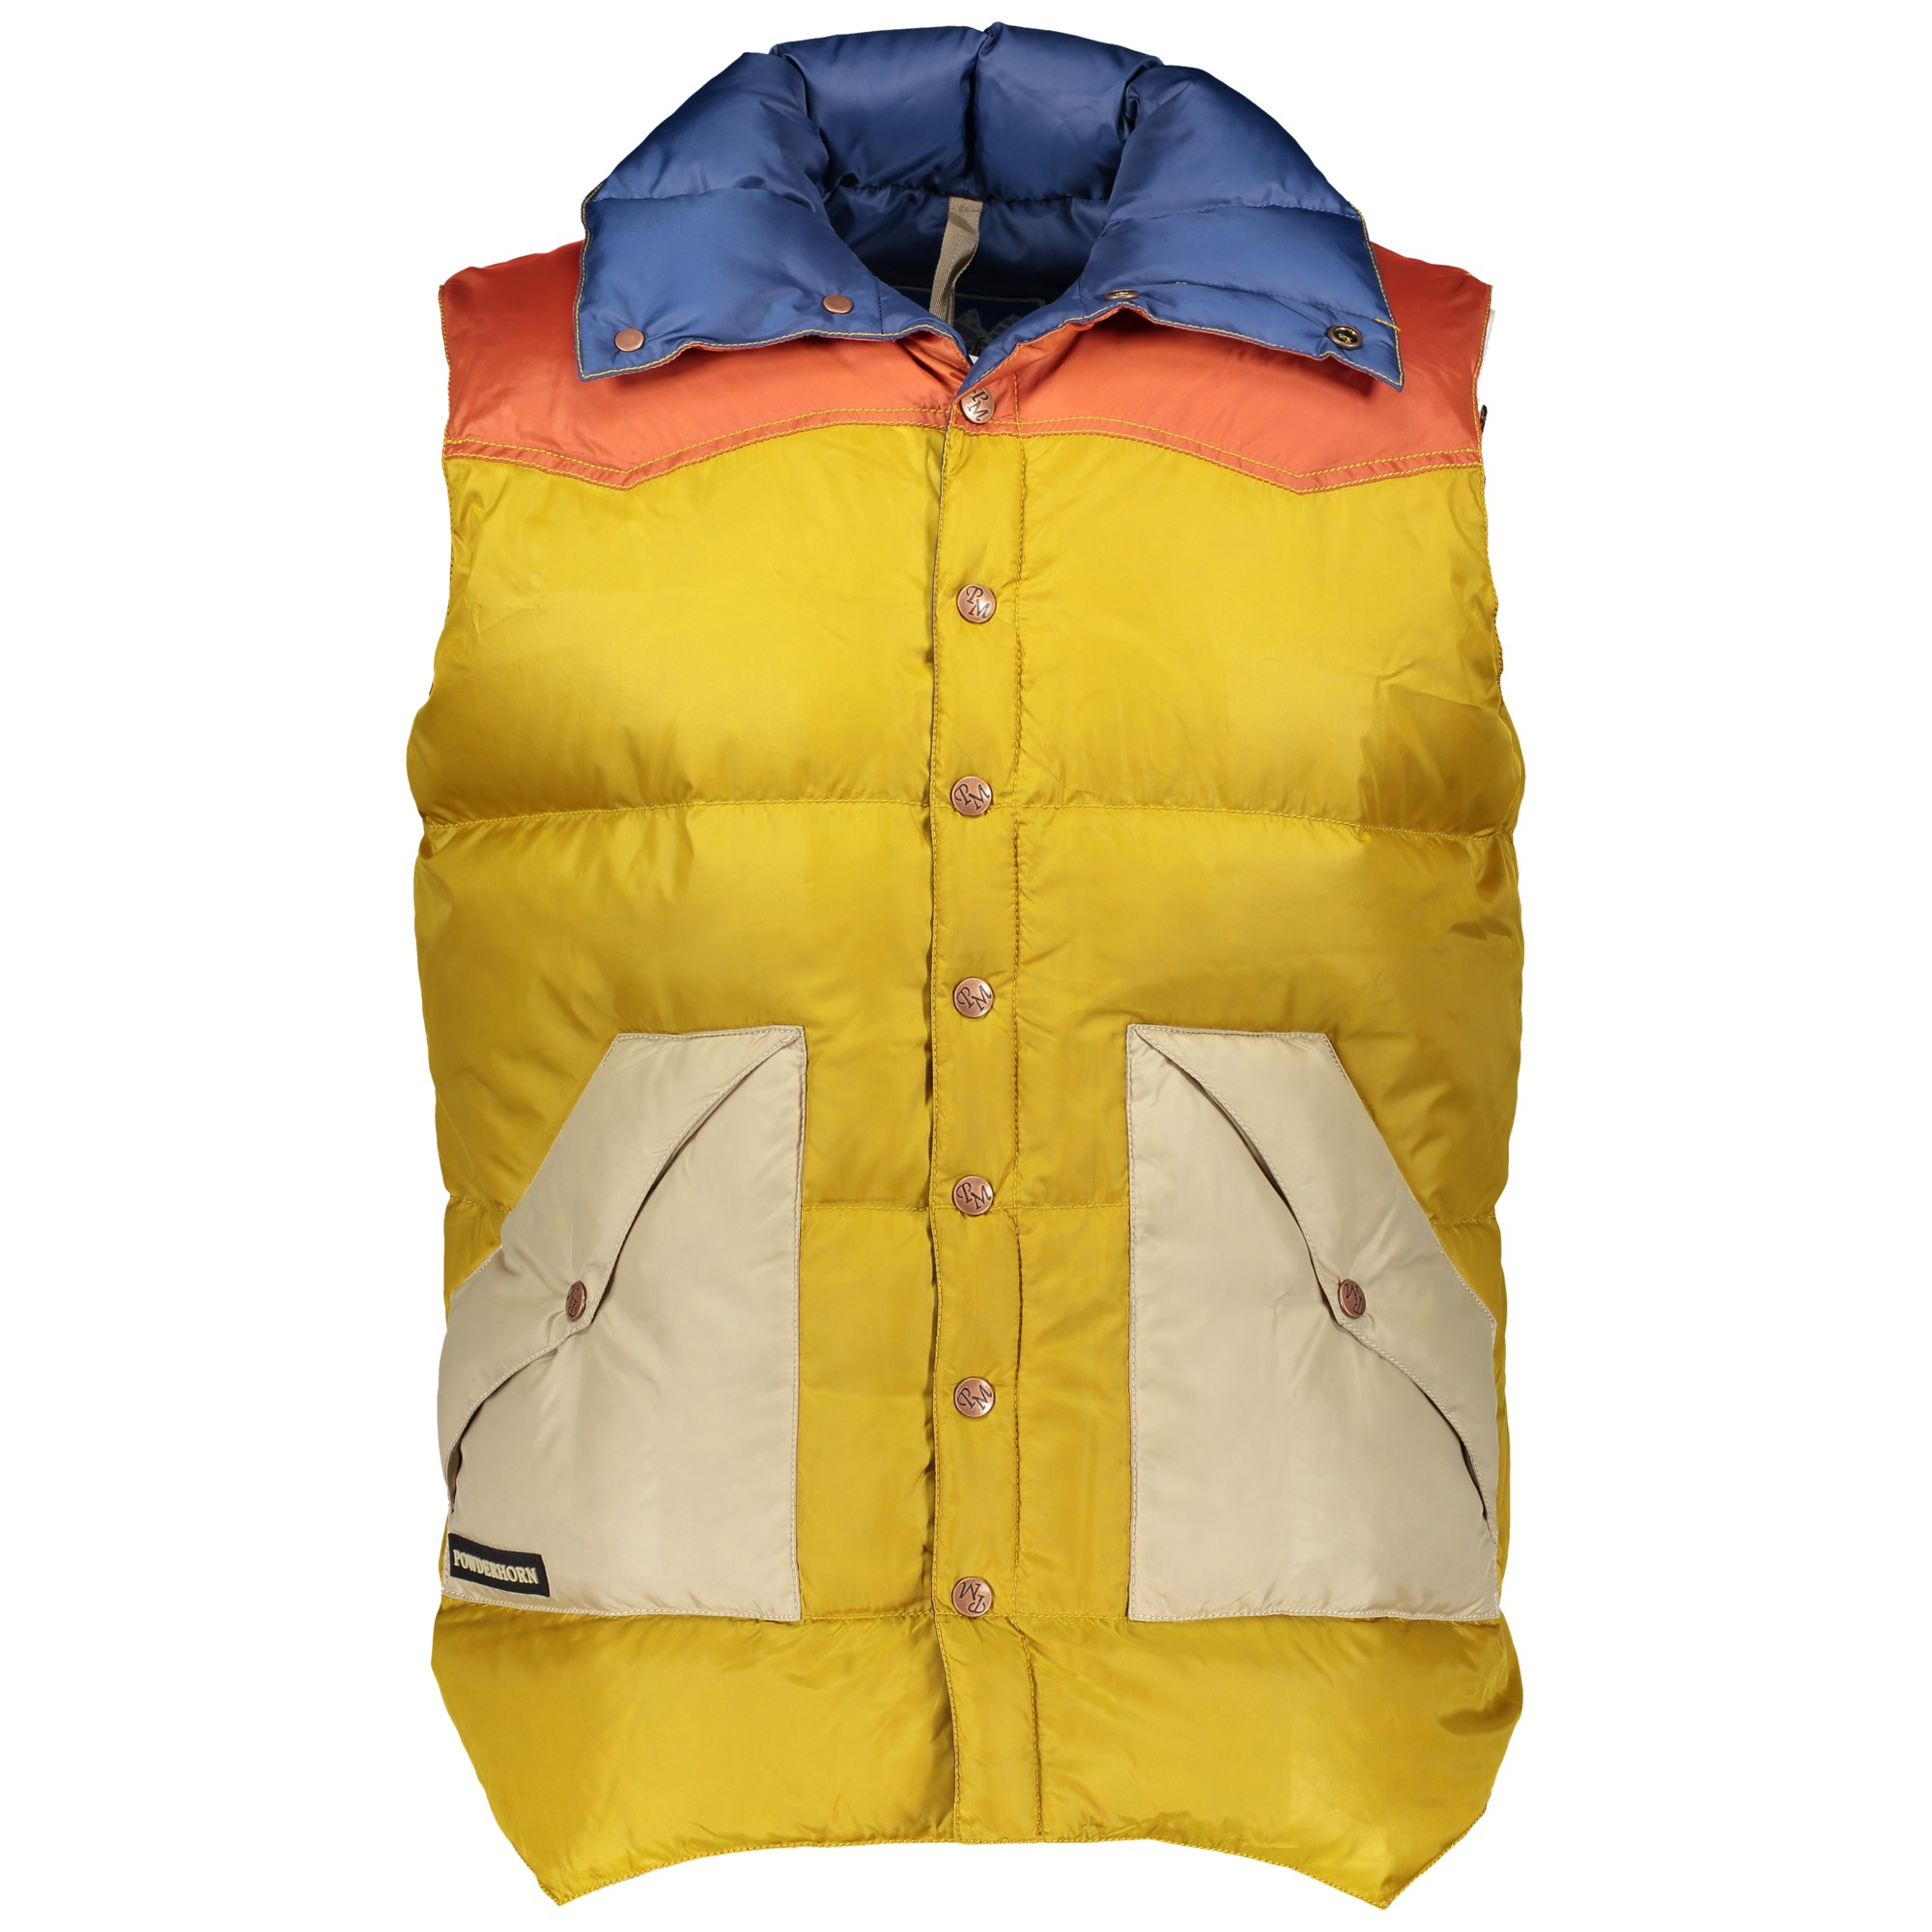 Powderhorn The Original Vest